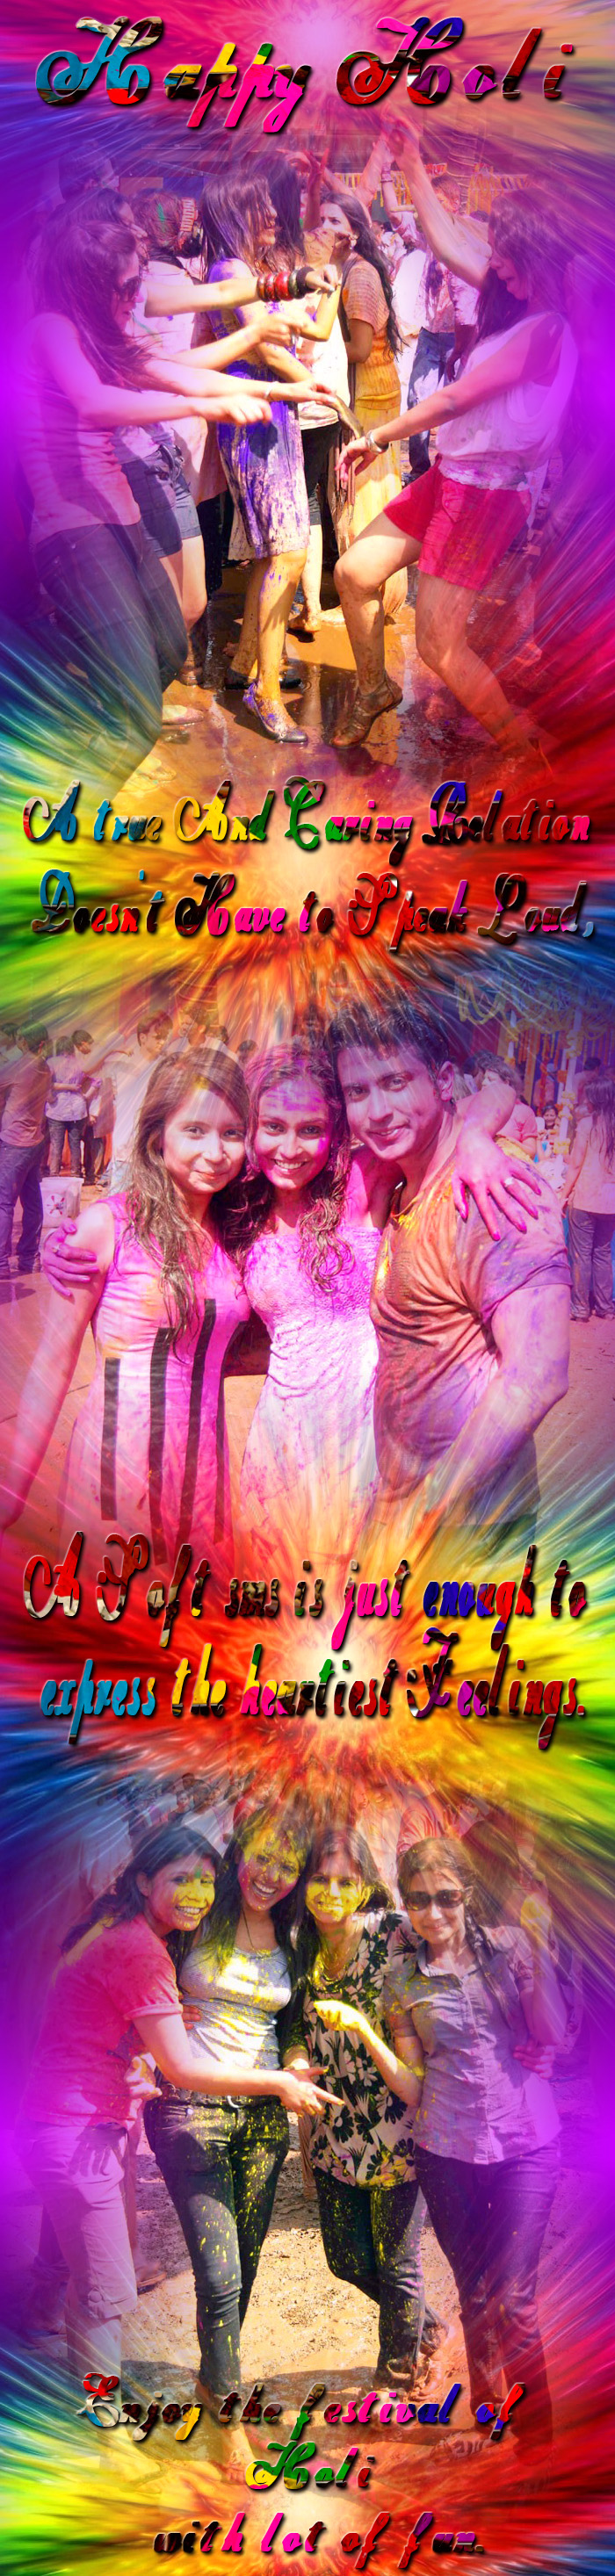 Happy Holi - Beautiful Holi Ecard  IMAGES, GIF, ANIMATED GIF, WALLPAPER, STICKER FOR WHATSAPP & FACEBOOK